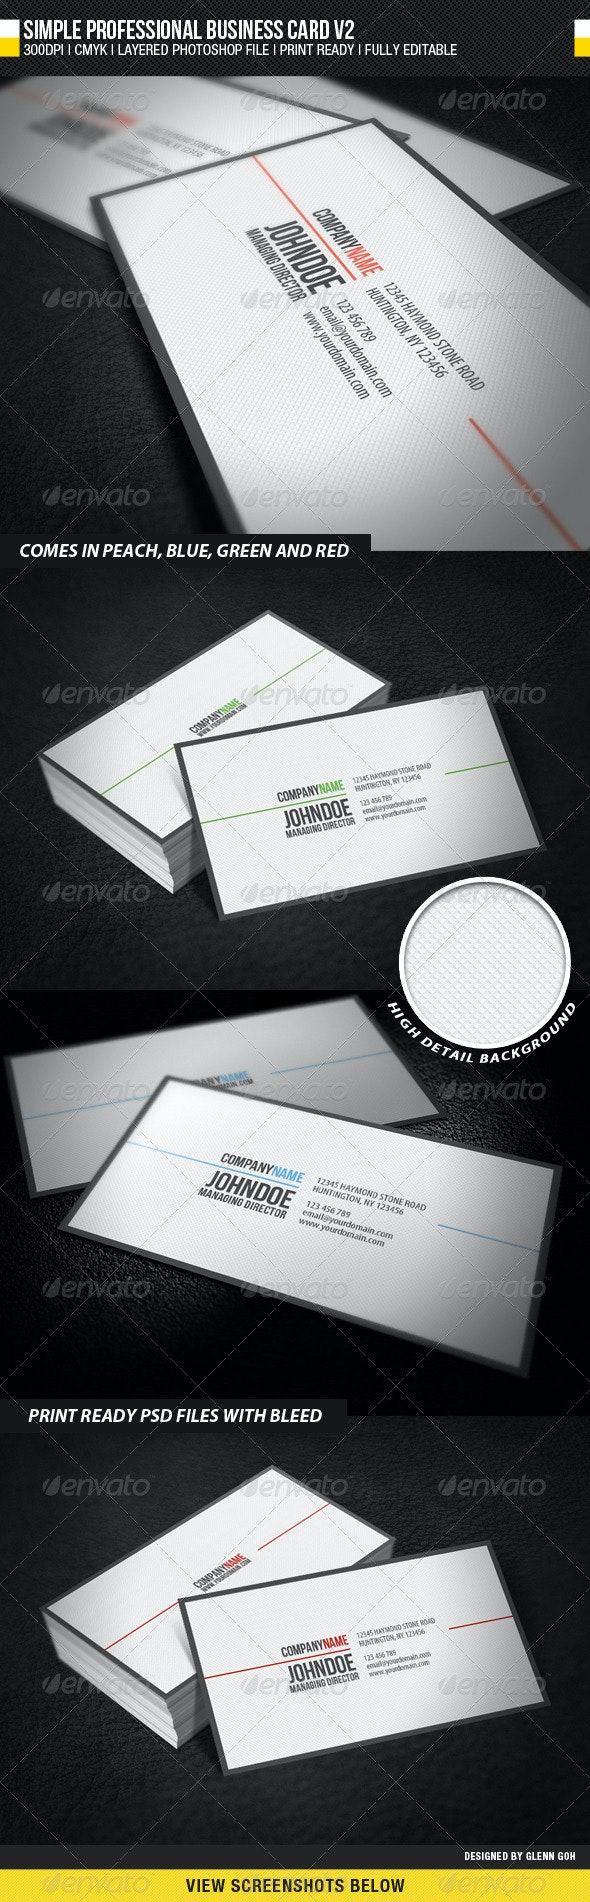 Simple Professional Business Card V2 - Corporate Business Cards